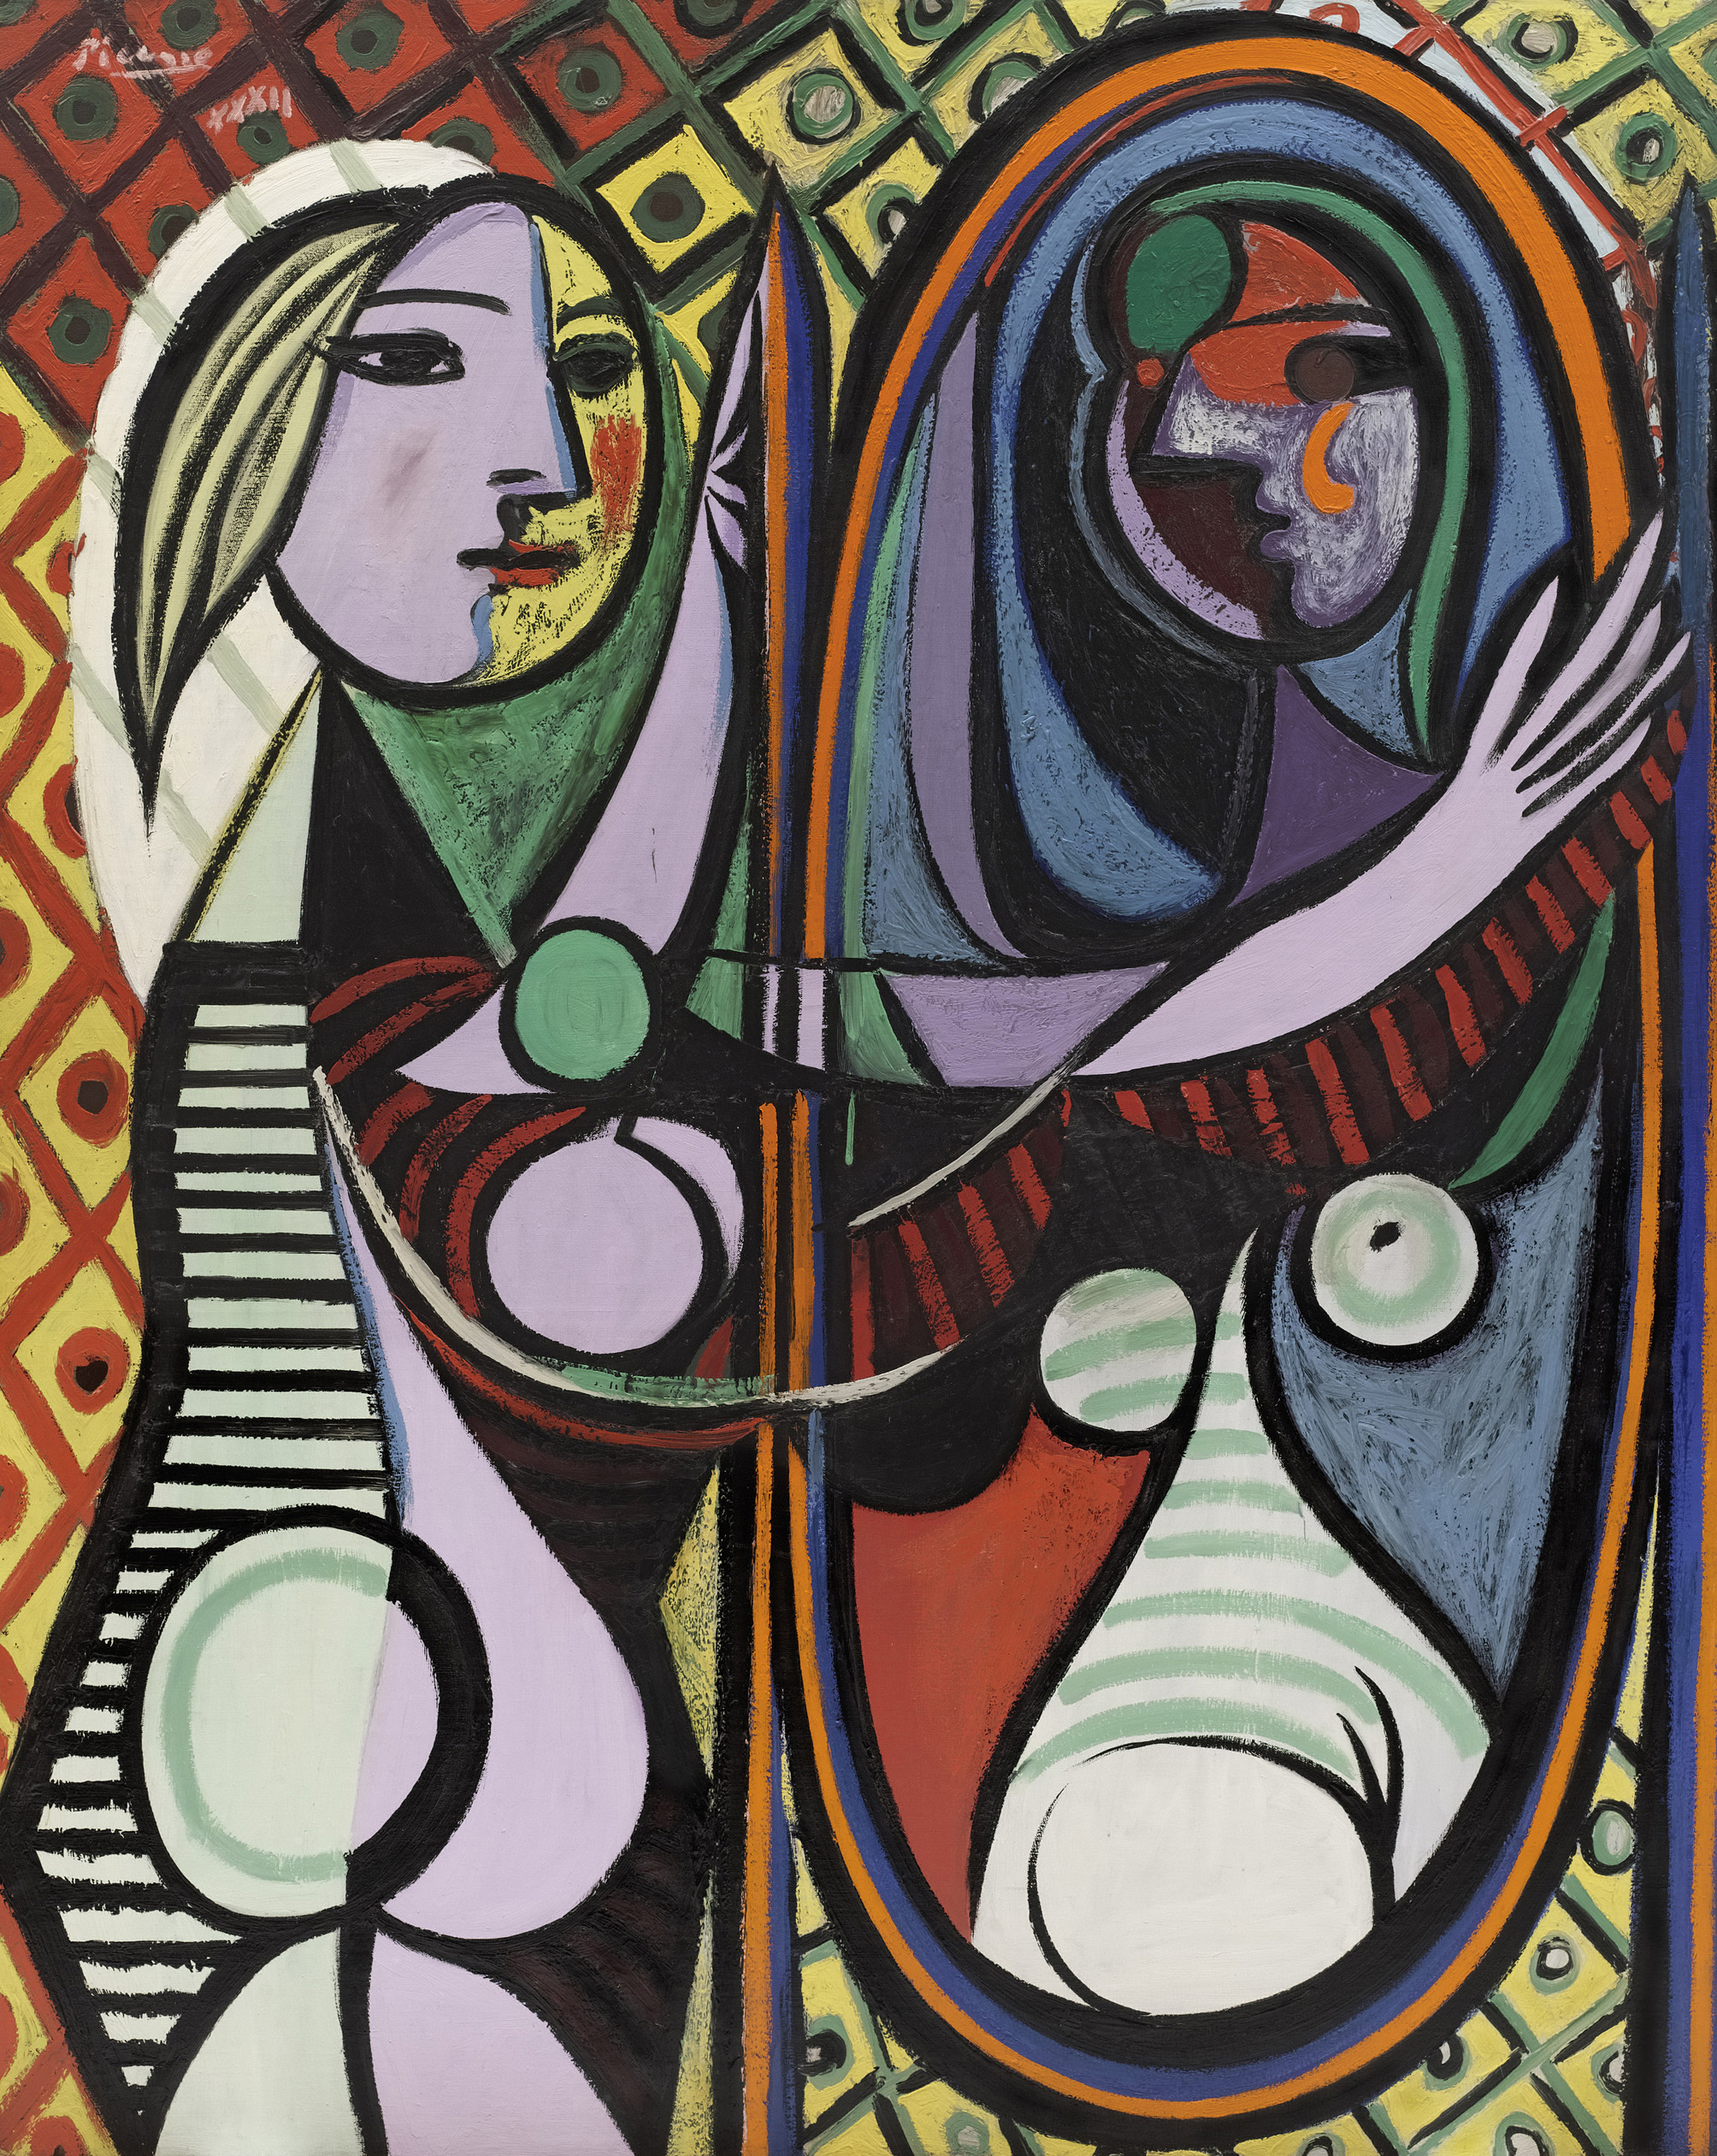 Girl Before a Mirror, Pablo Picasso 1932 - via the Museum of Modern Art, New York. Gift of Mrs. Simon Guggenheim in 1937  © Succession Picasso/DACS London, 2018